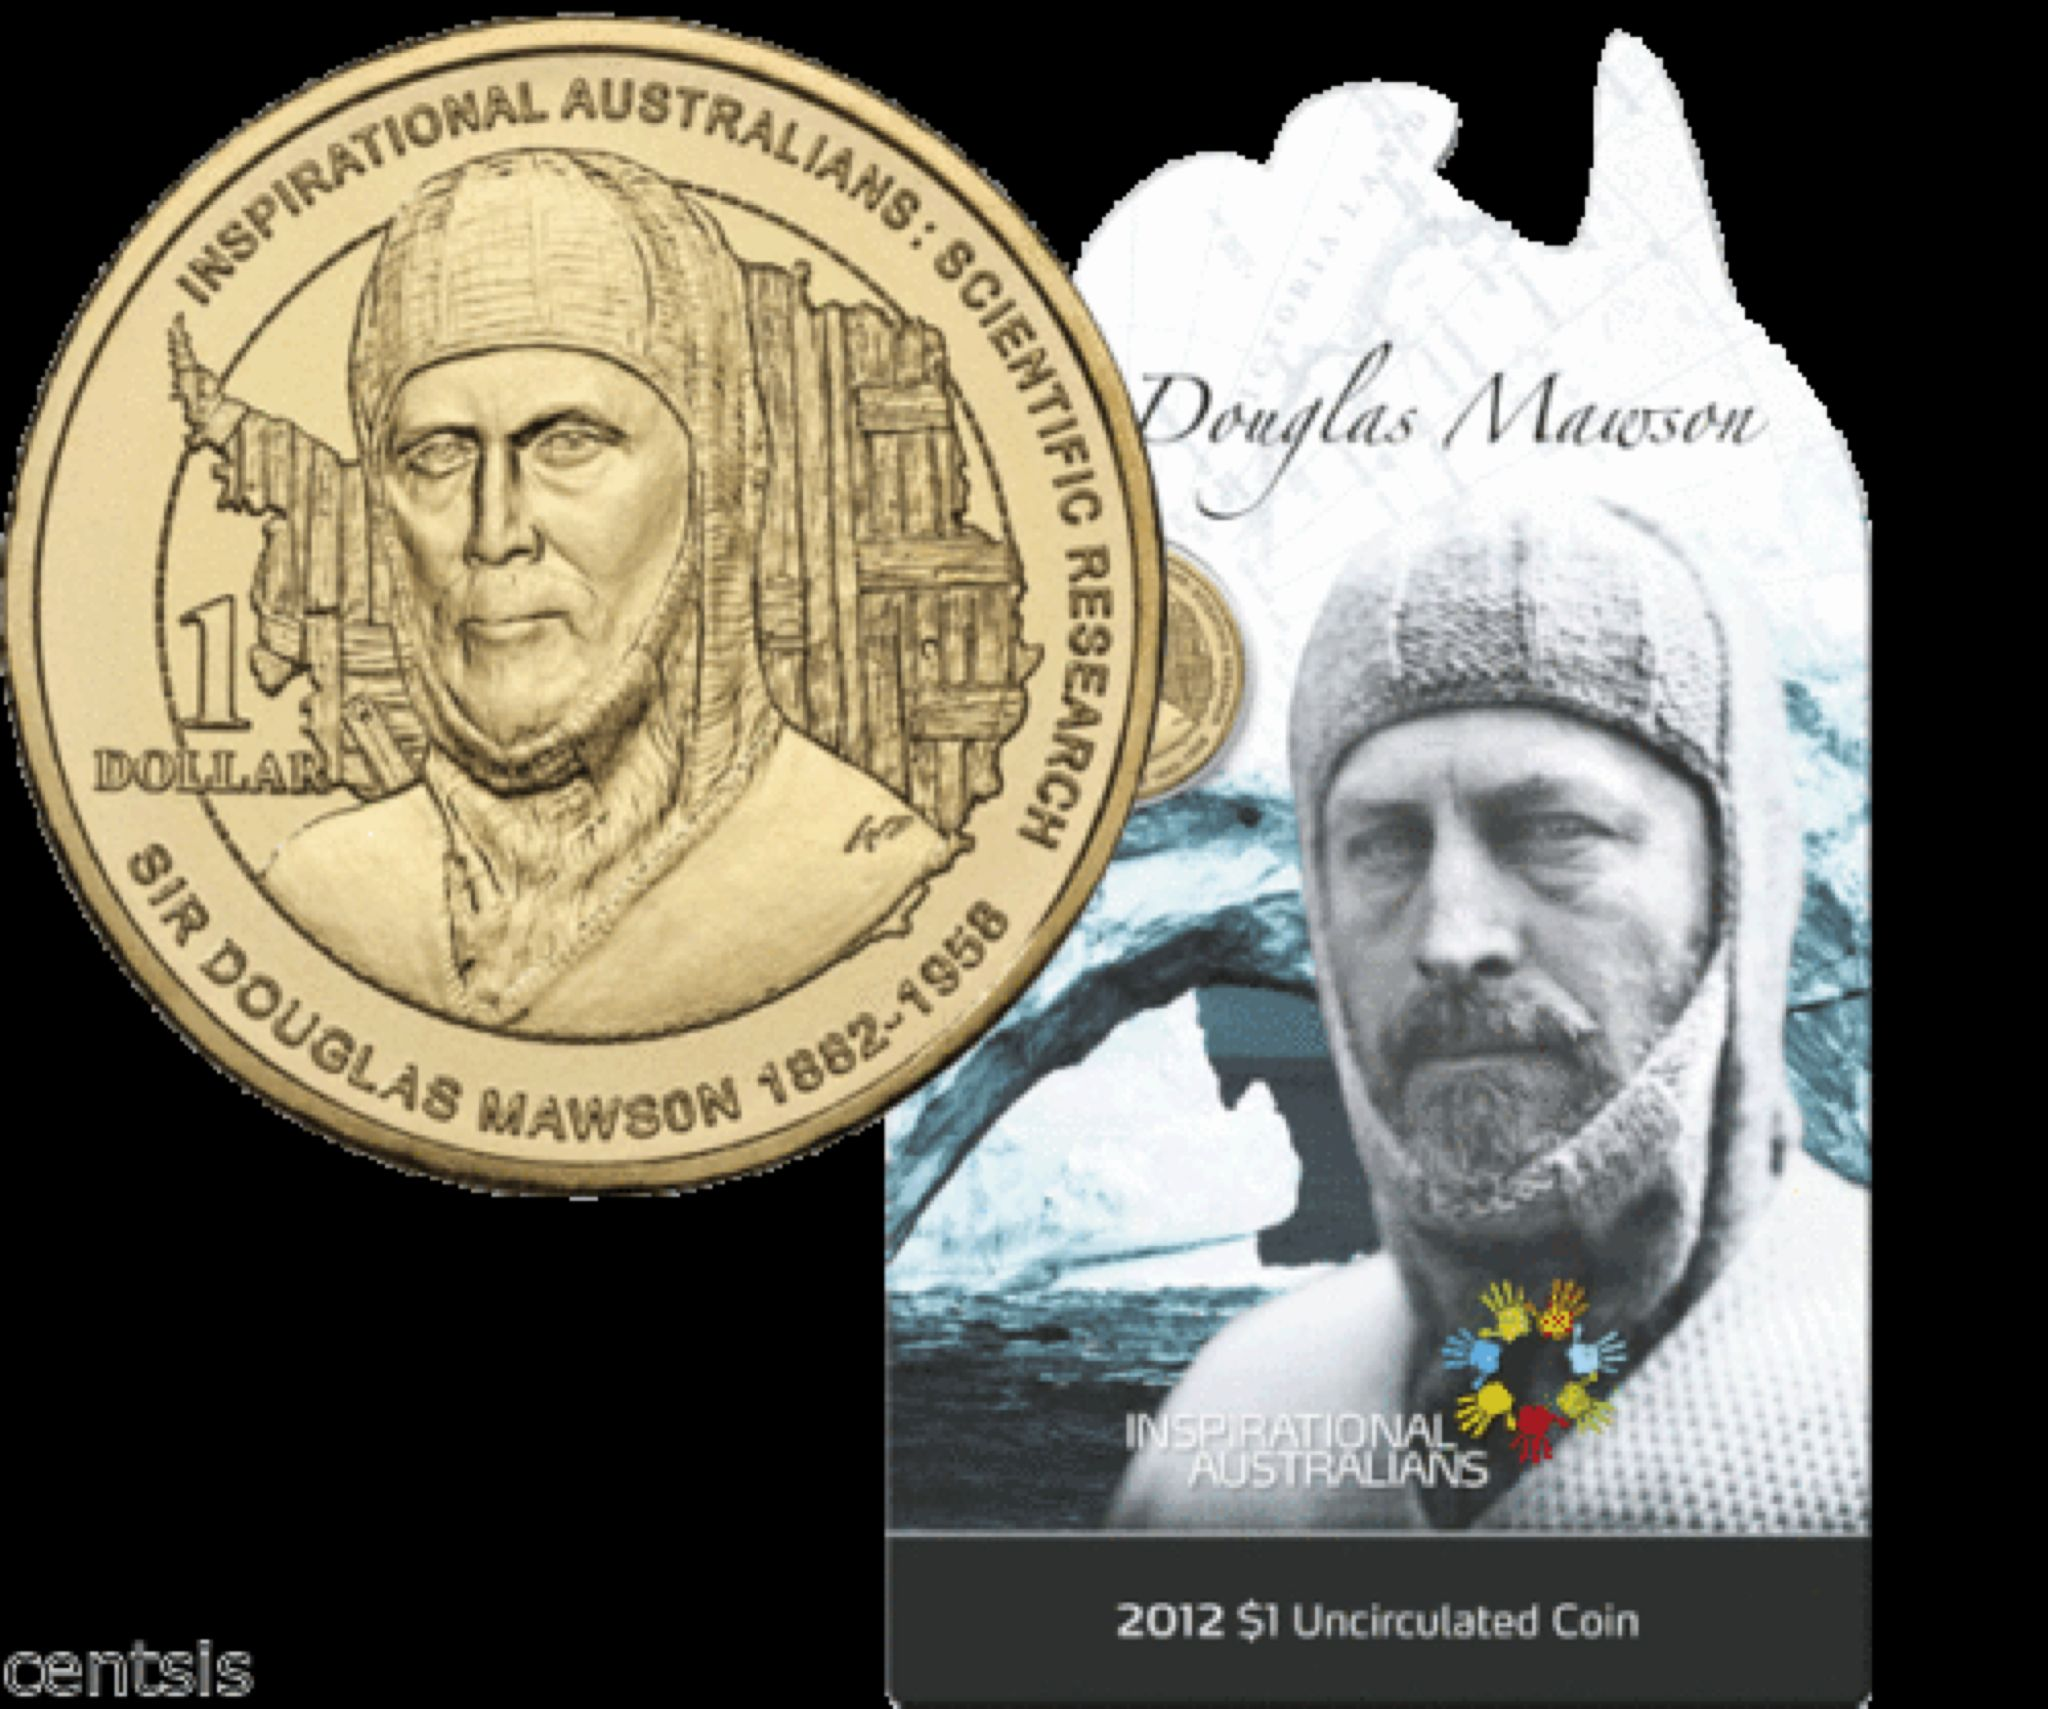 2012 Inspirational Australians - Sir Douglas Mawson Coin - $1 (2012) front image (front cover)